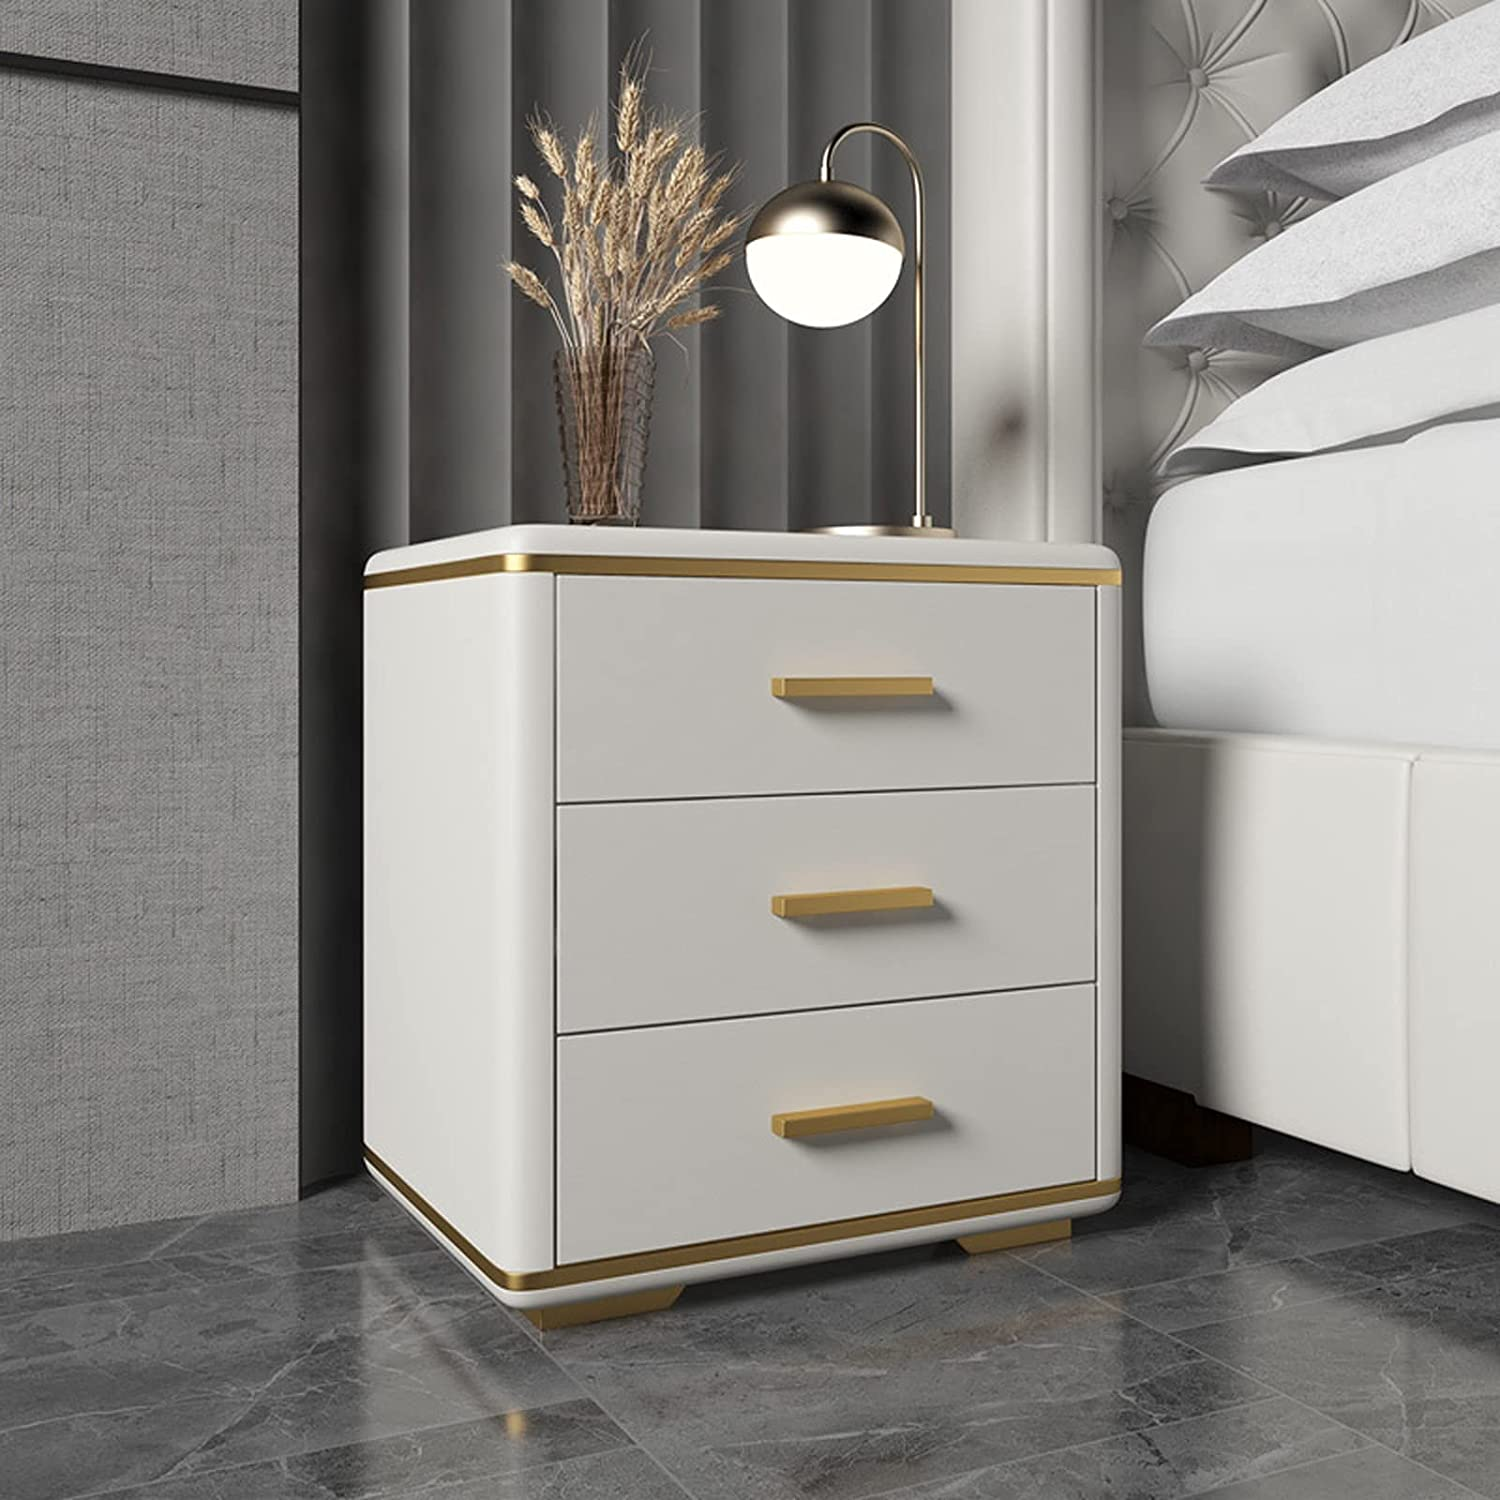 SHUTING2020 We OFFer Chicago Mall at cheap prices Bedroom Side Table Modern Bedro Master Bedside